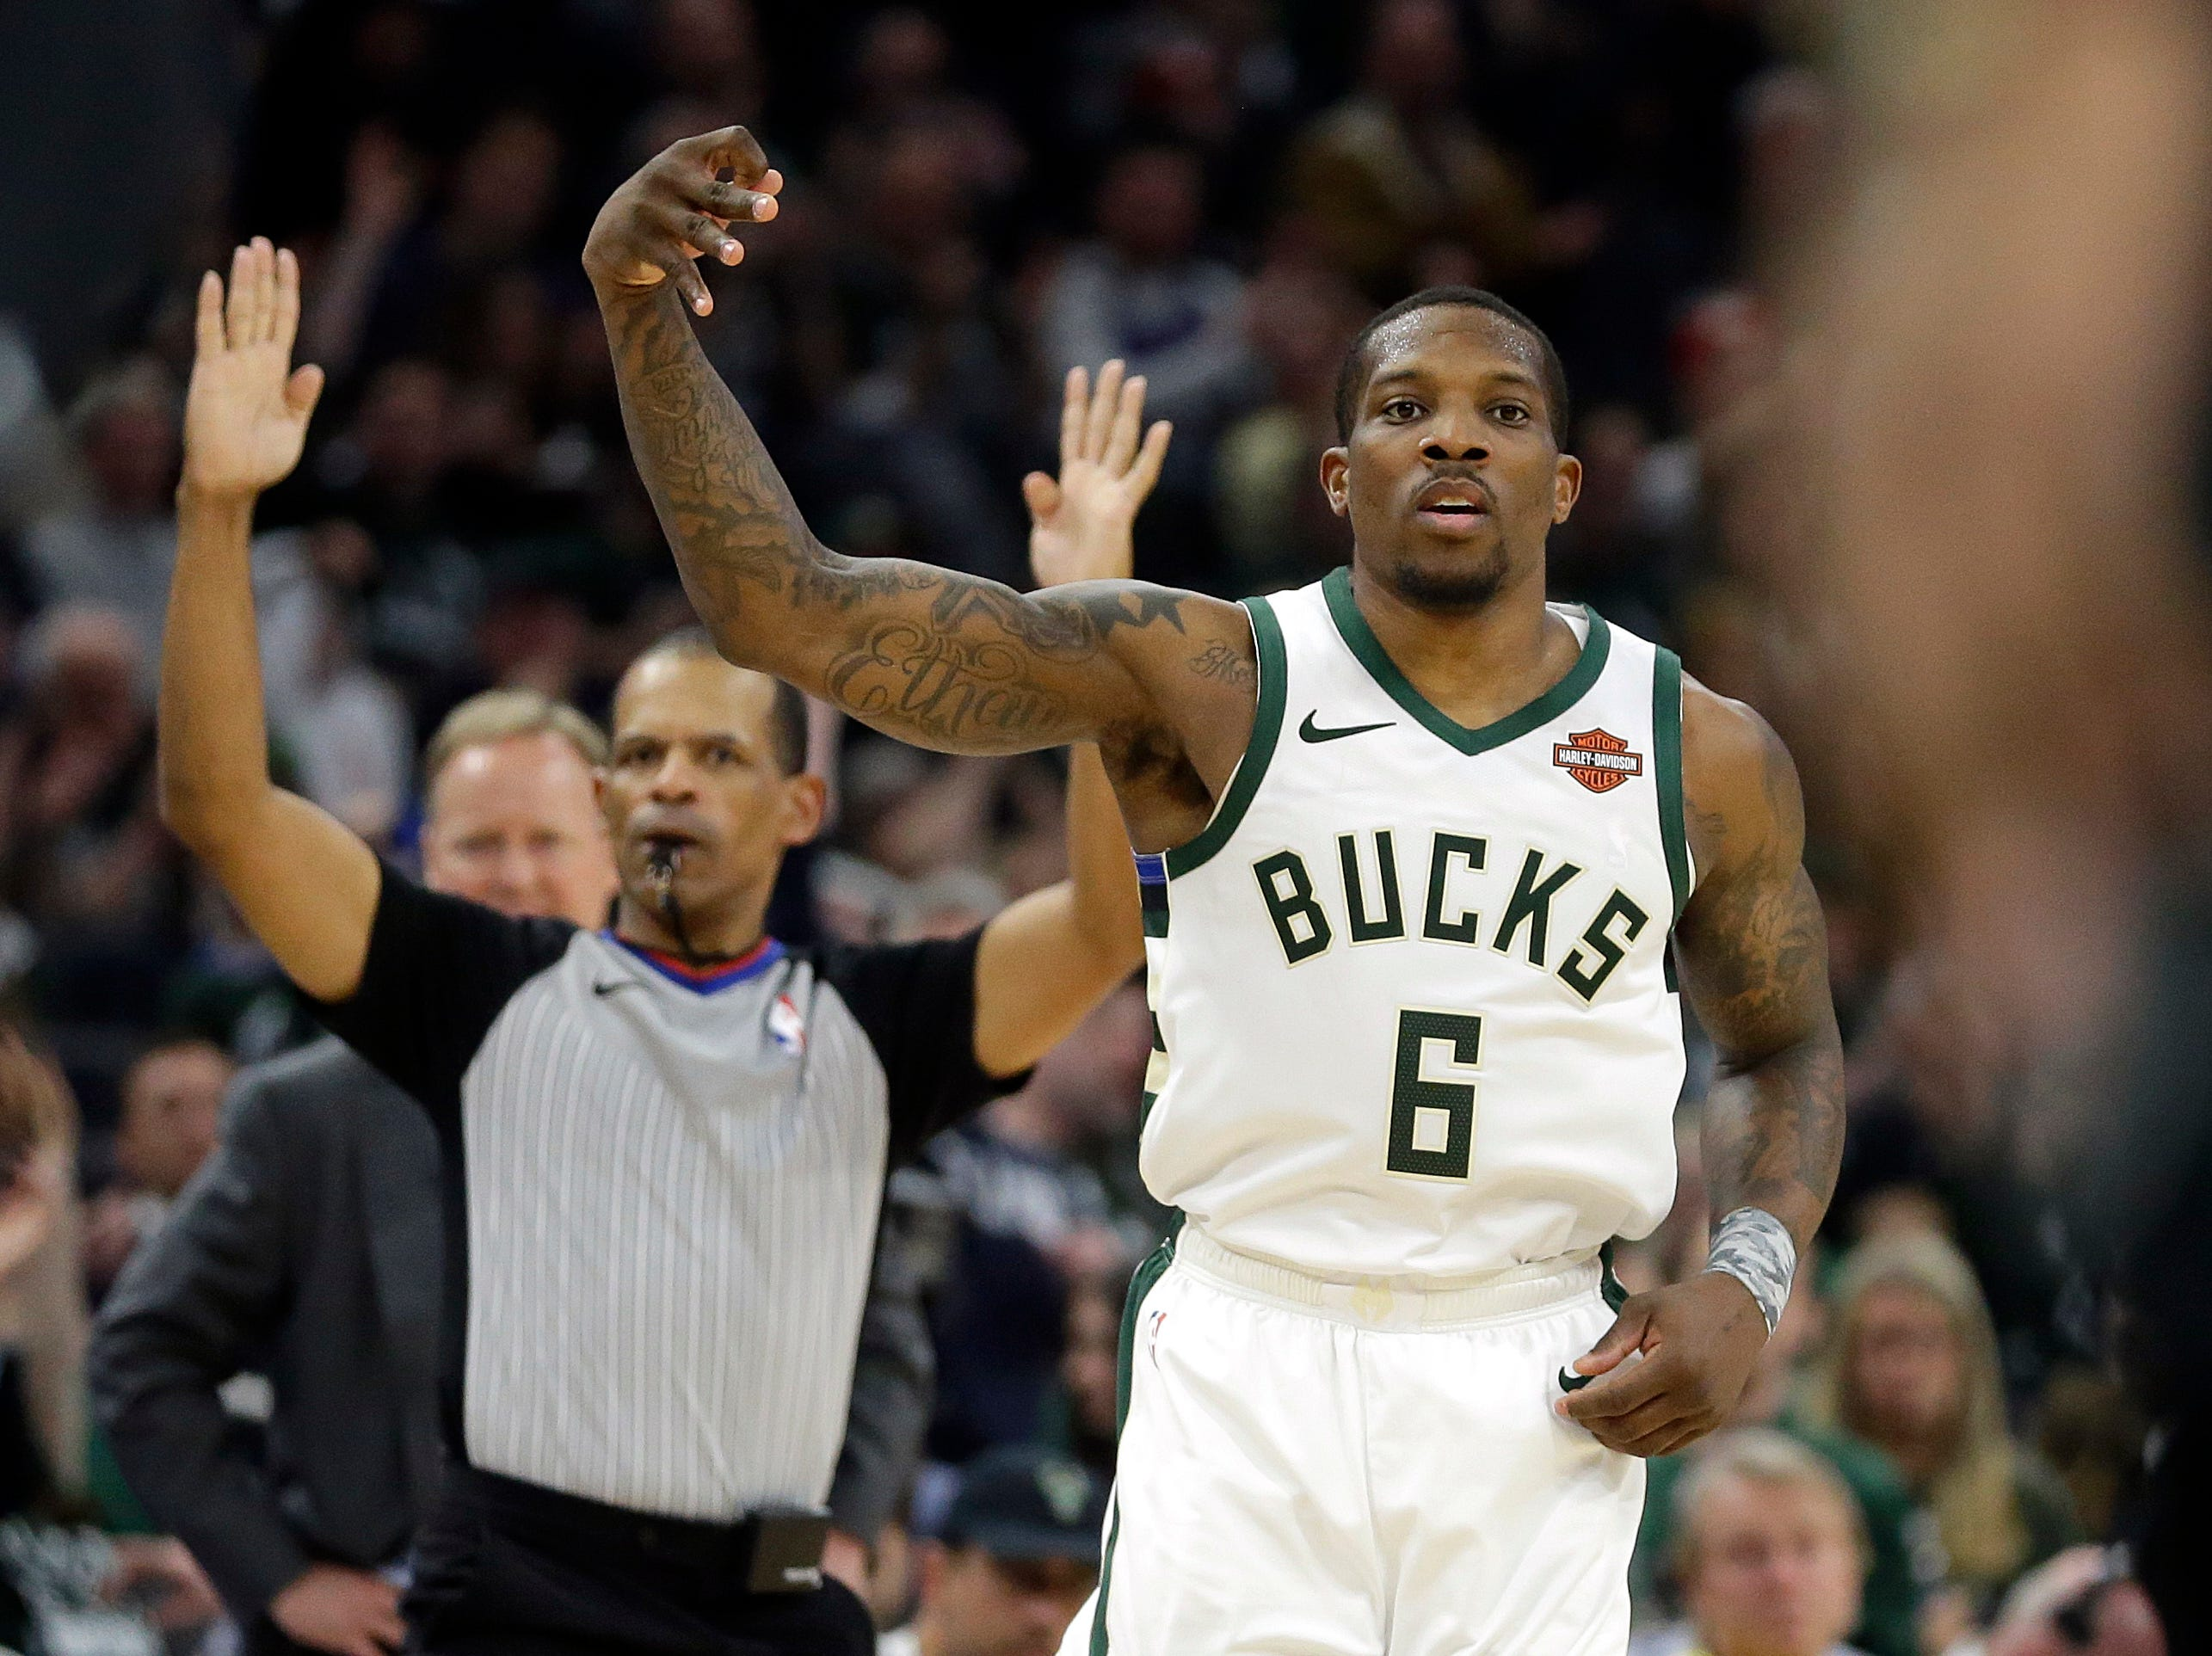 Milwaukee Bucks' Eric Bledsoe reacts after making a shot during the second half.